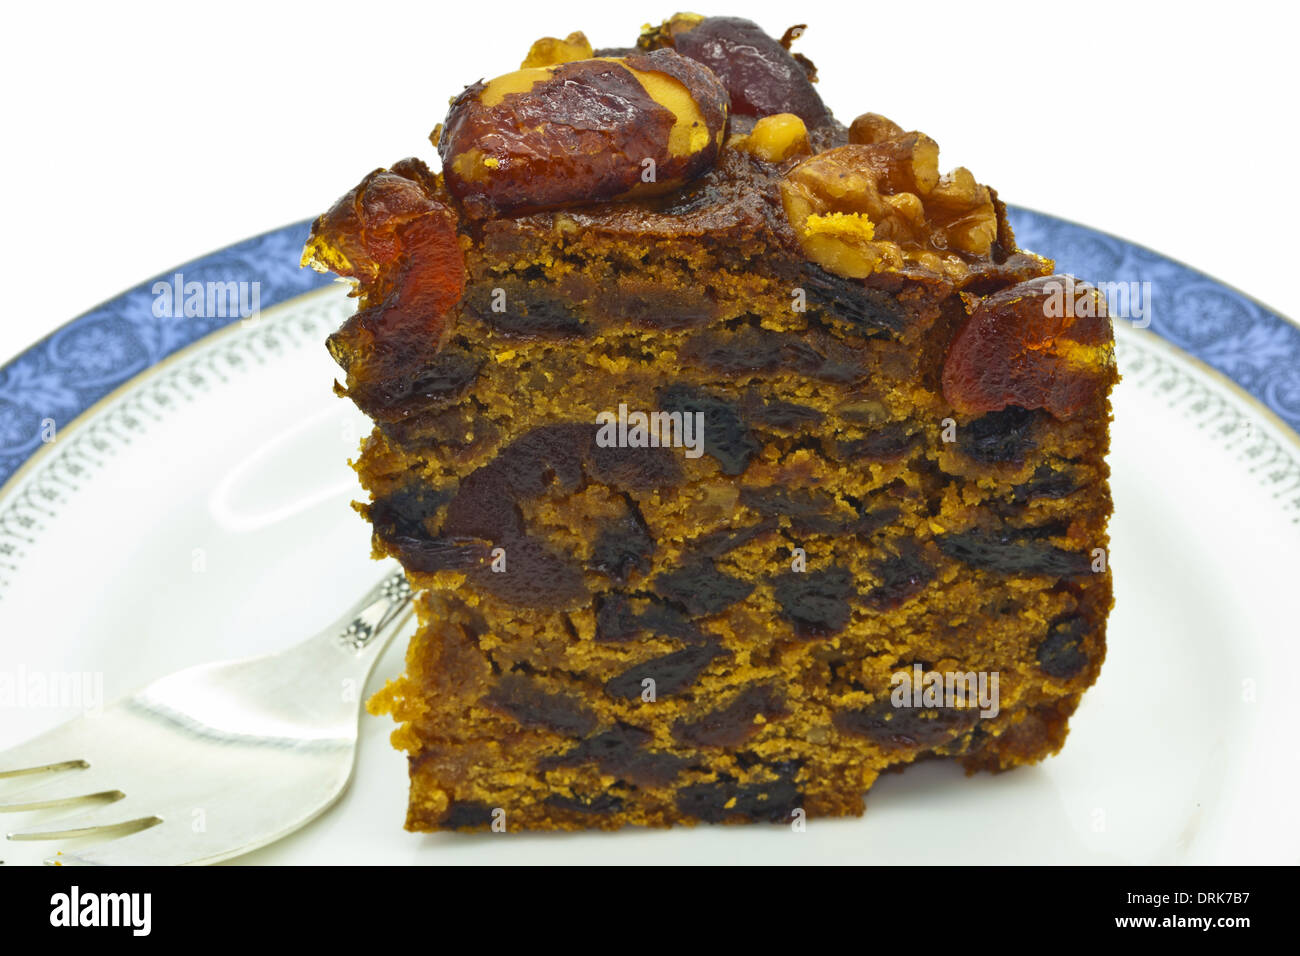 Piece of rich fruit cake on a plate with cake fork. - Stock Image